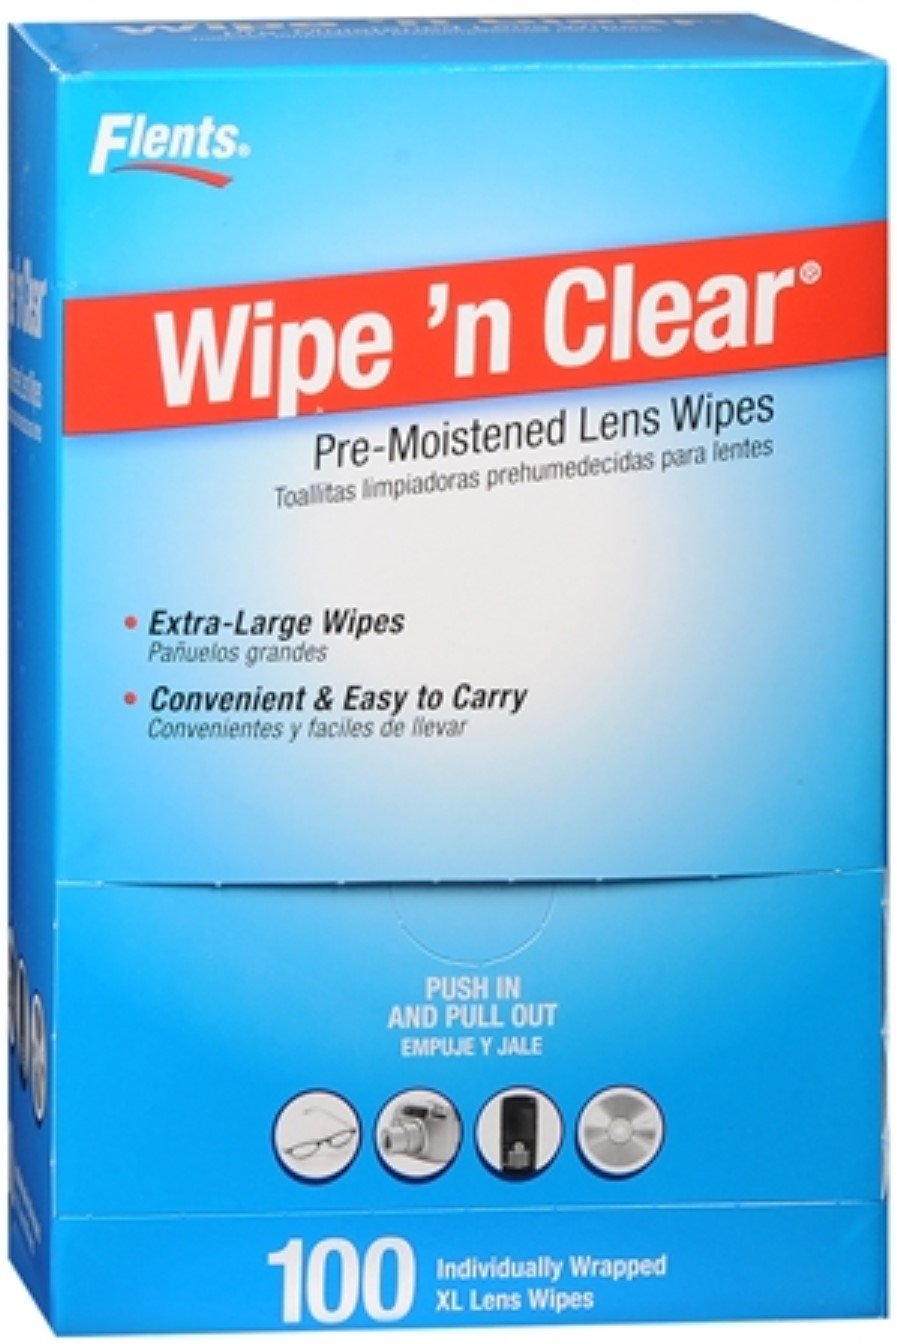 Amazon.com: Flents Wipe N Clear Premoistened Tissues #F414-210 100 Each (Pack of 8): Health & Personal Care